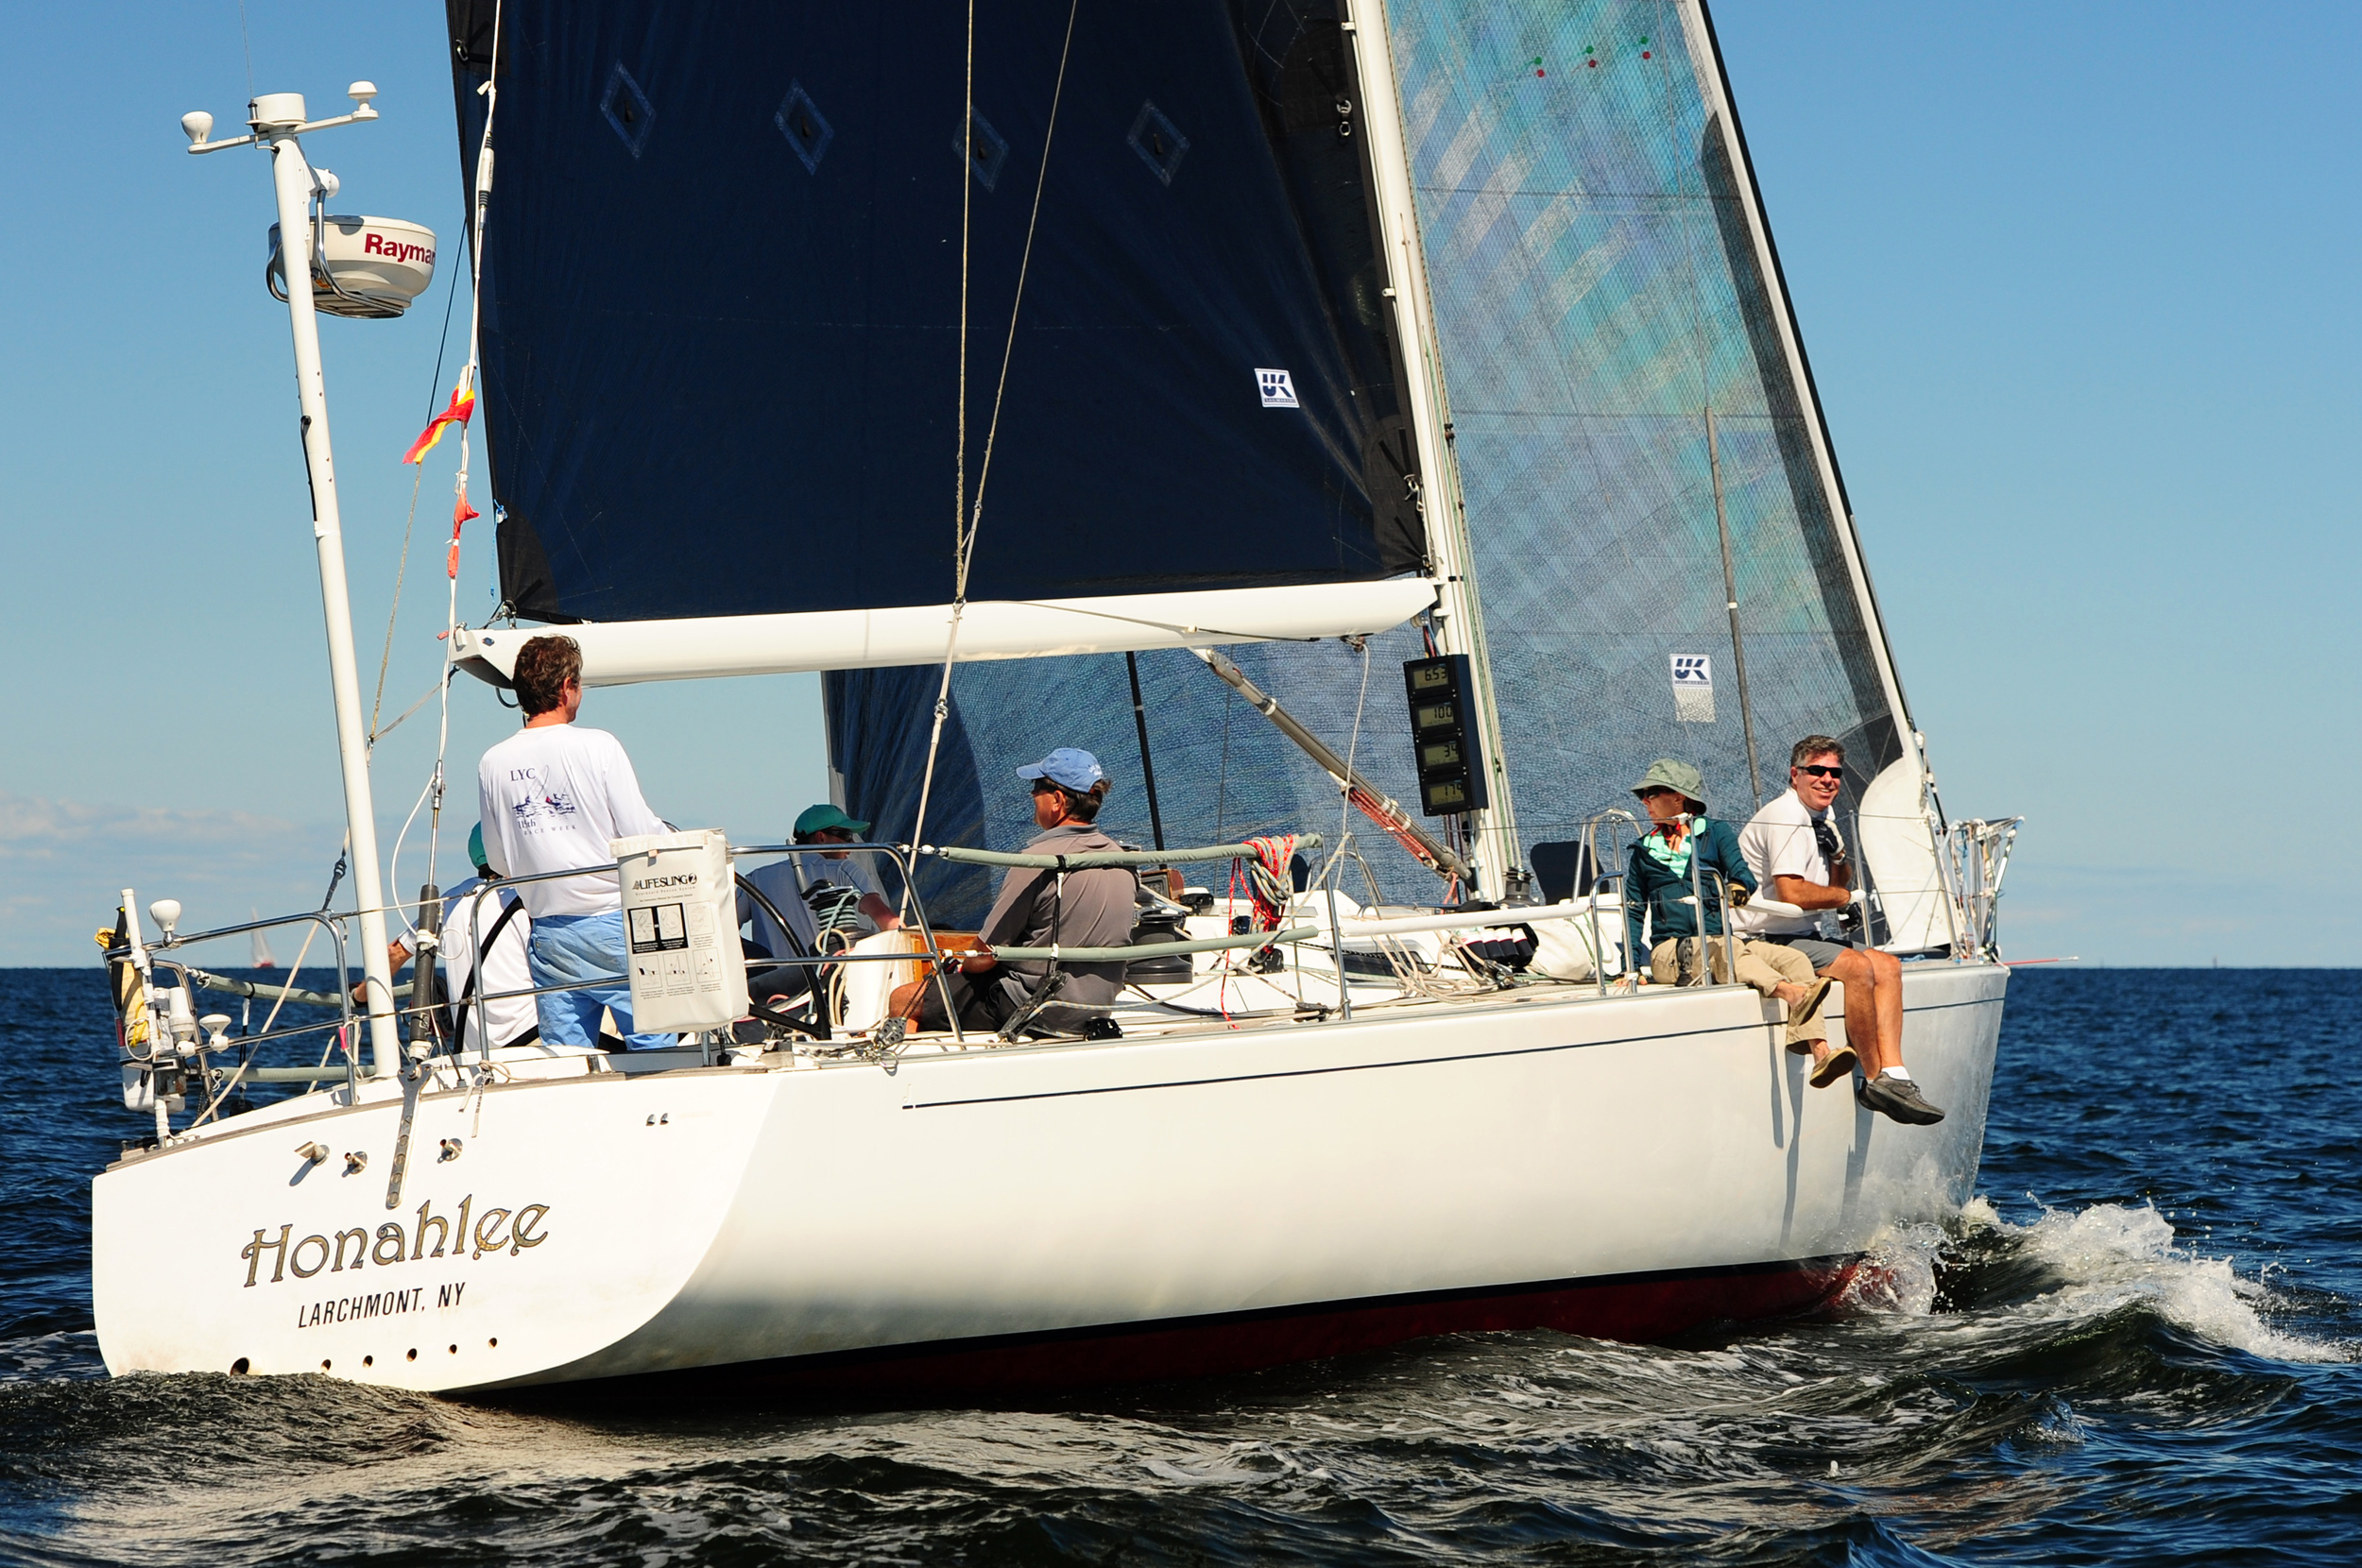 2014 Vineyard Race A 1673